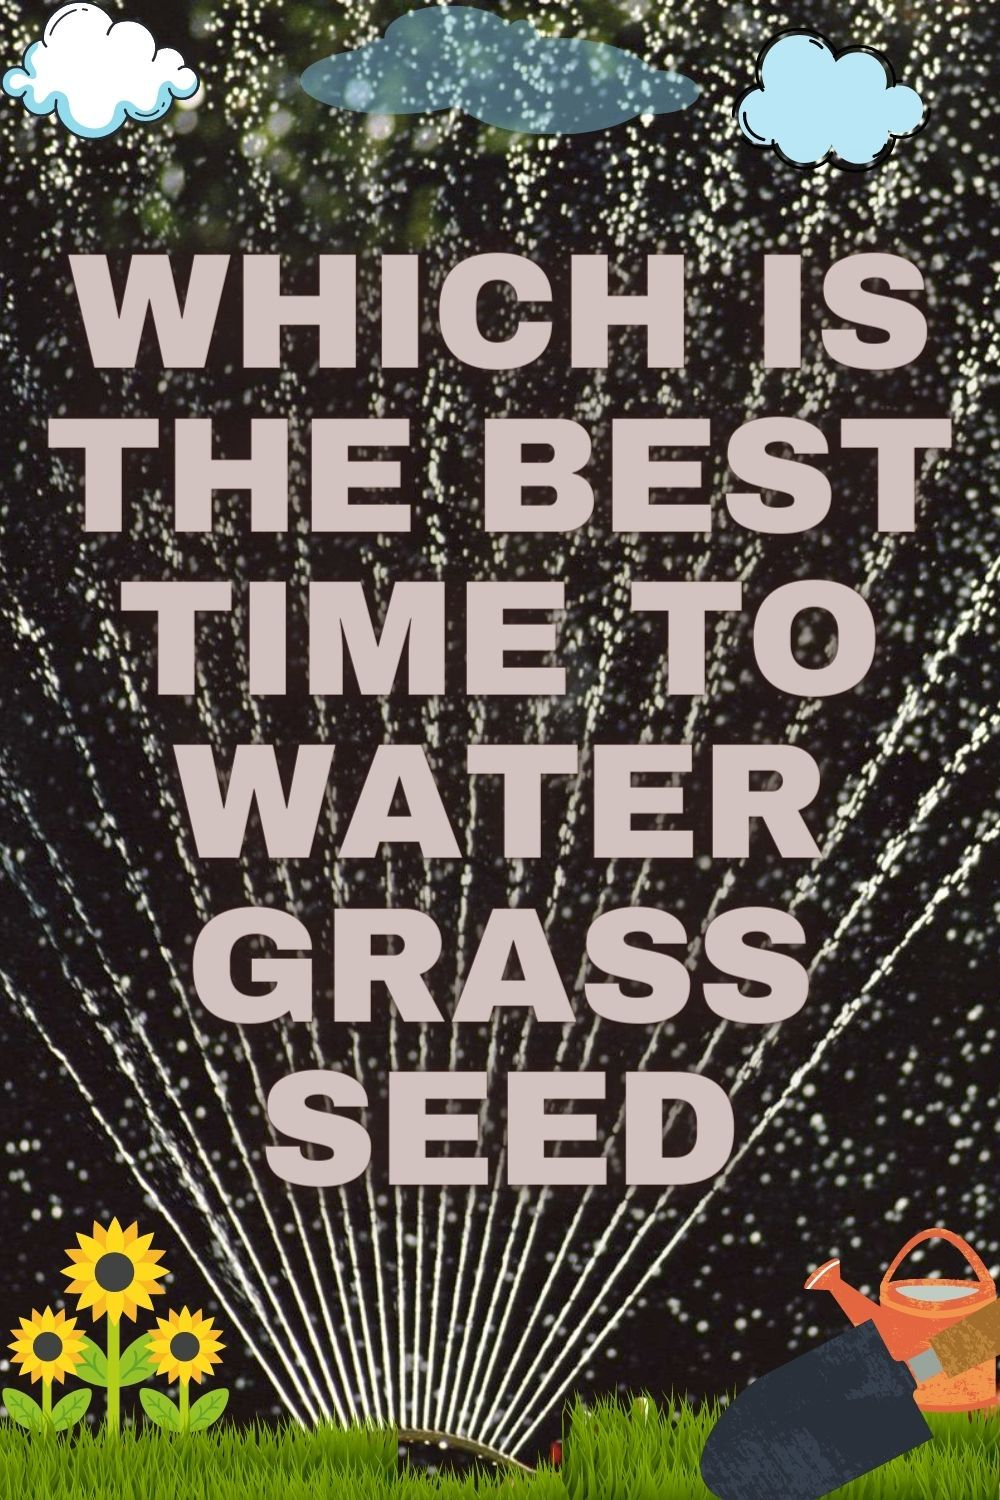 The Best Time To Water Grass Seed If Don T Worry You Are At The Right Station The Abidance Which Is Called Grass Seed Watering I In 2021 Grass Seed Water Grass